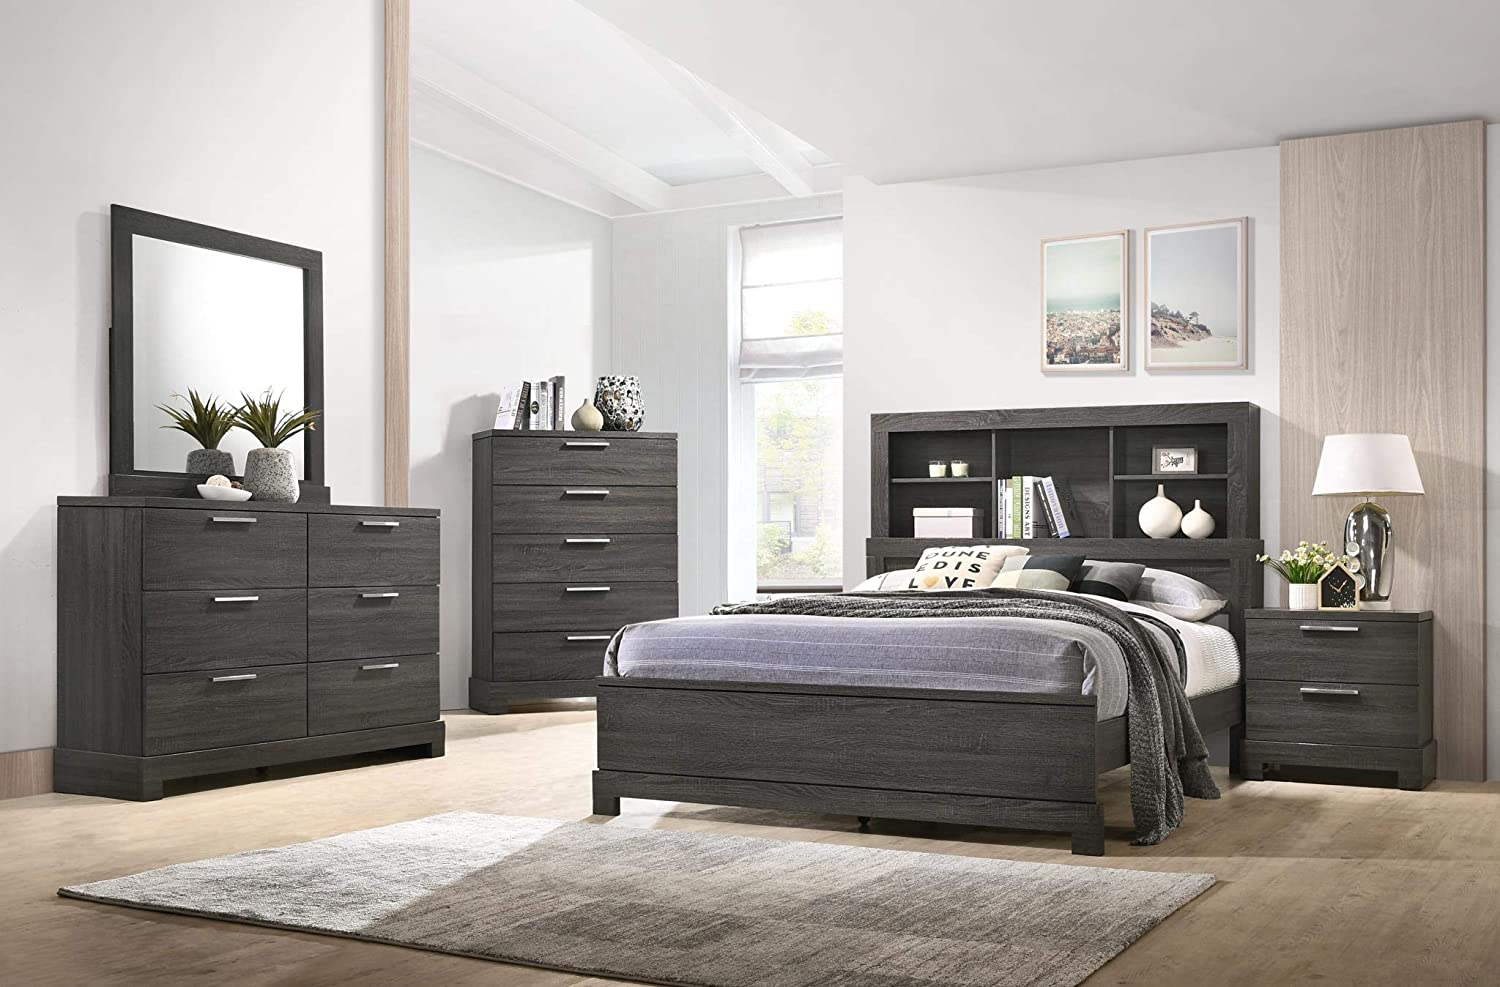 GTU Furniture Contemporary Bookcase headboard Bedroom Set (Queen Size Bed,  5 Pc)